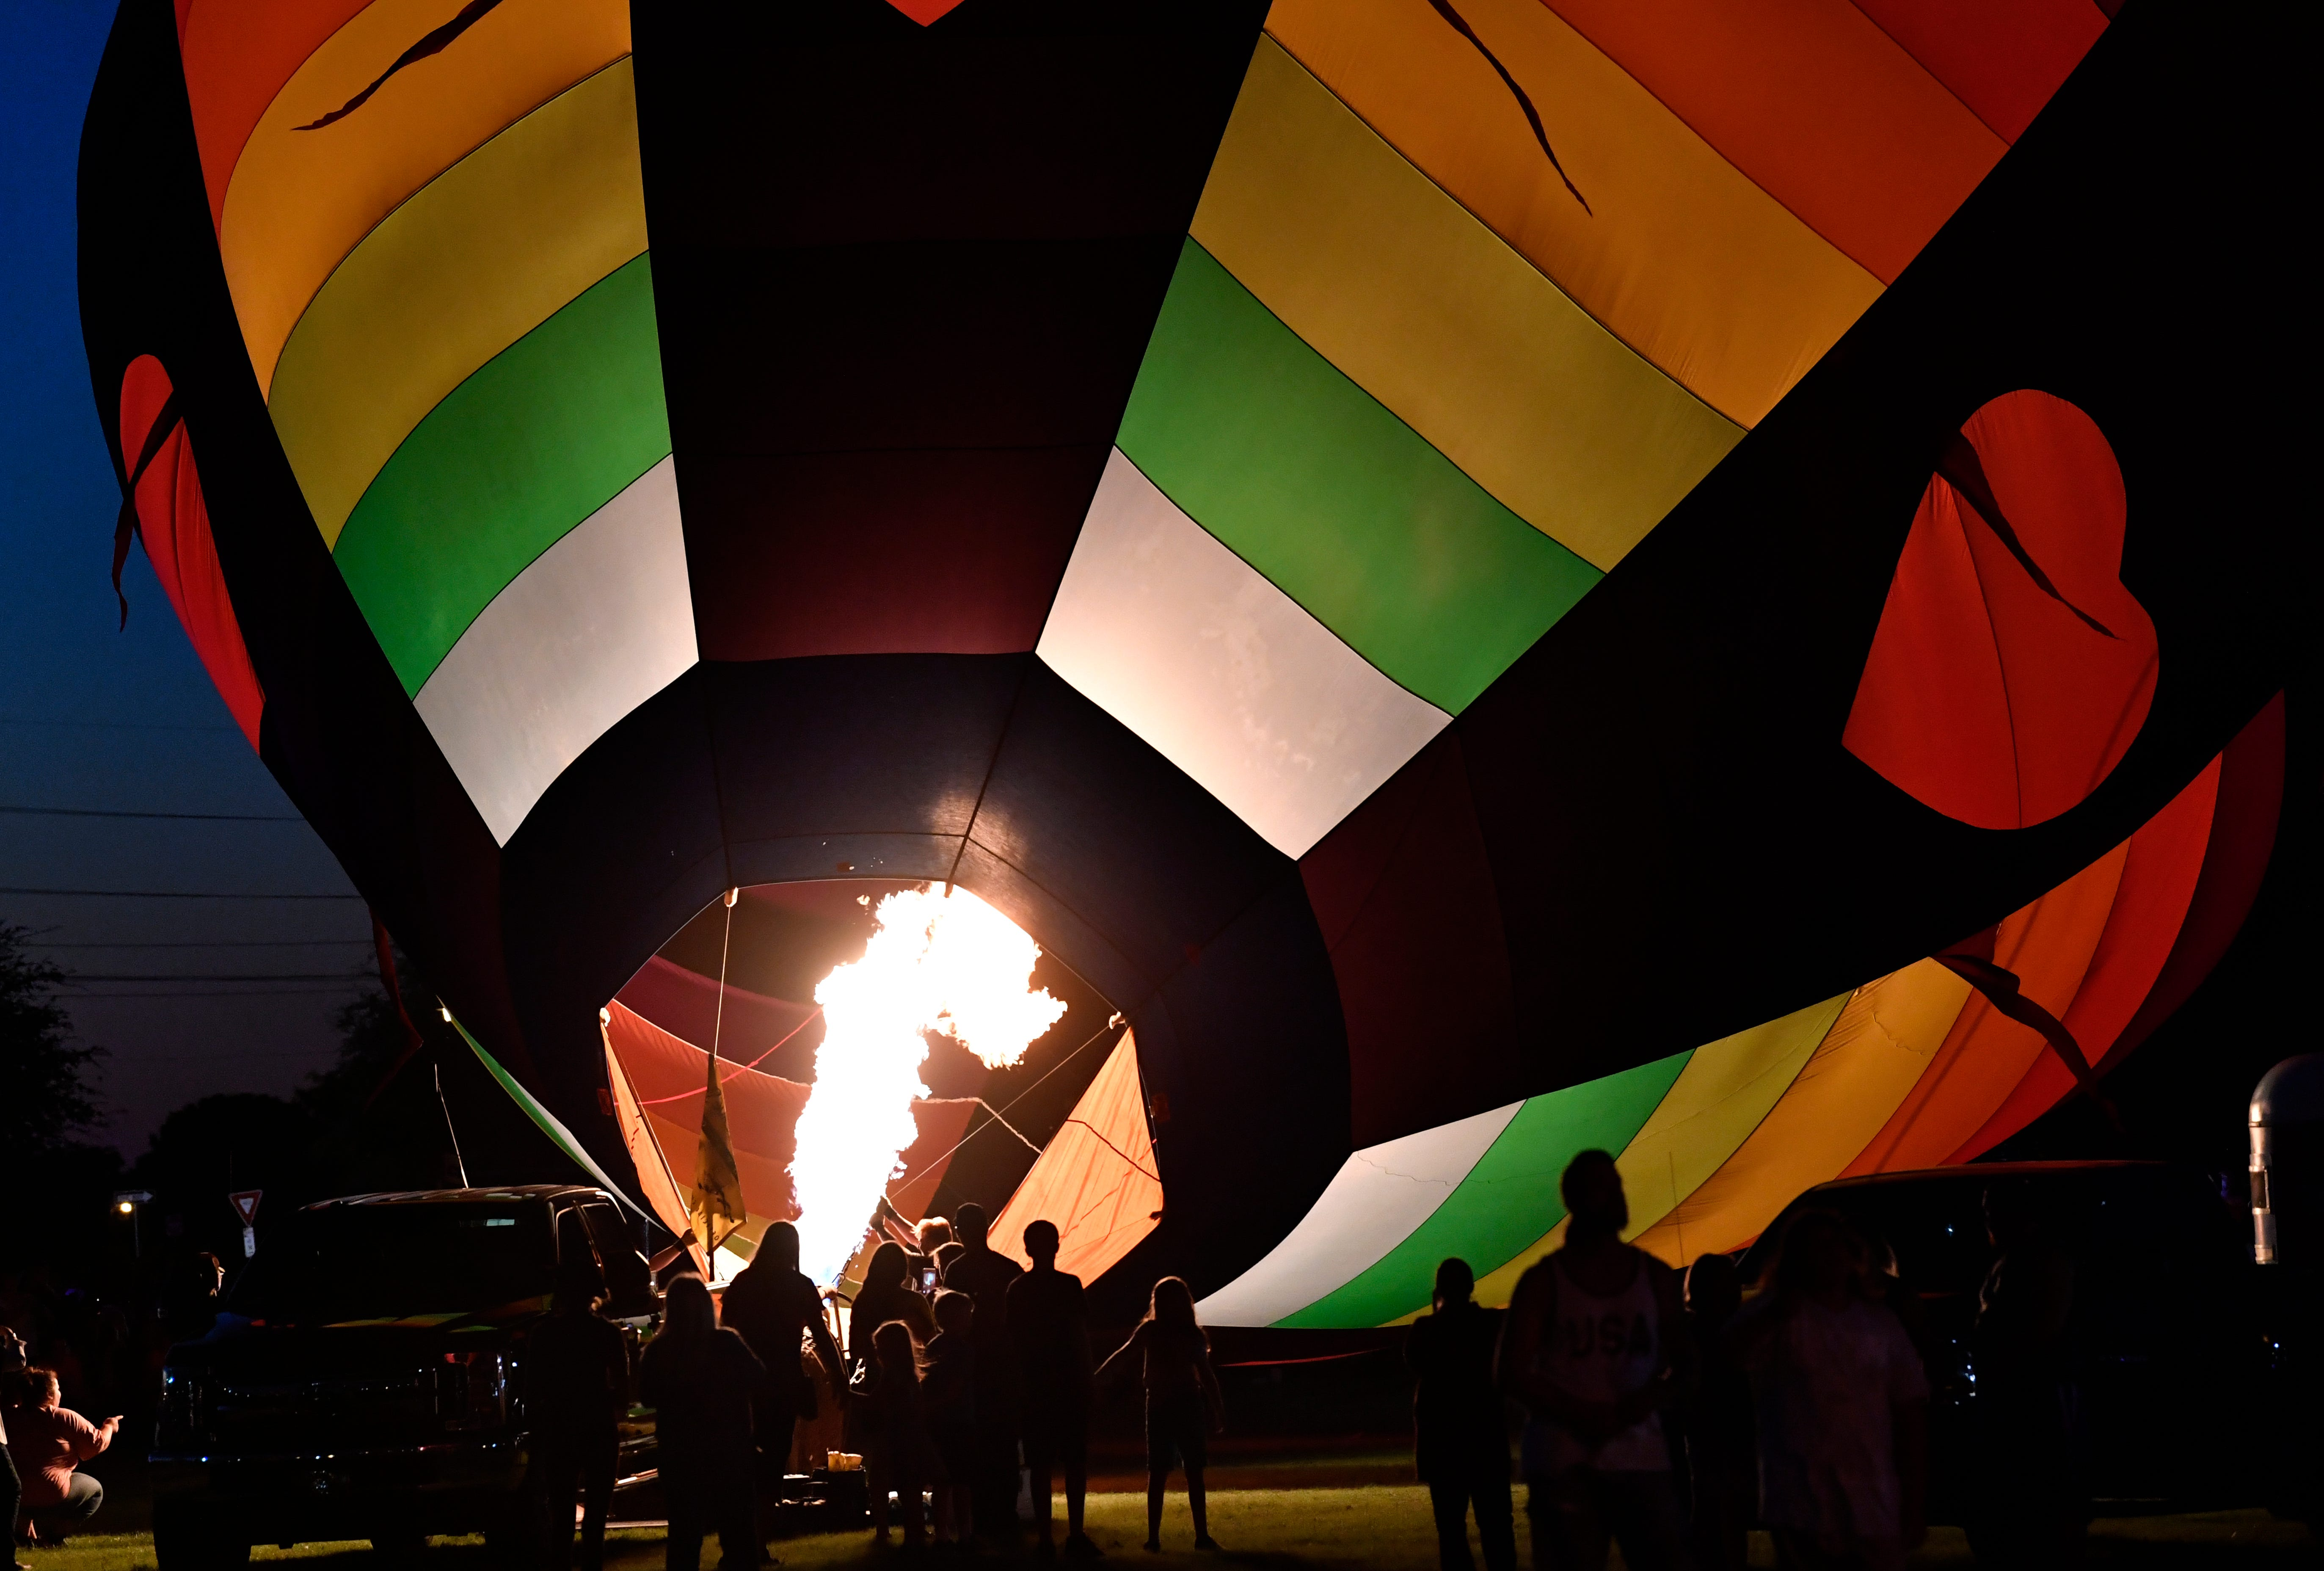 Spectators watch as a crew inflates the Shotgun Rider hot air balloon. Saturday evening saw a successful balloon glow at the Big Country Balloon Fest in Redbud Park.